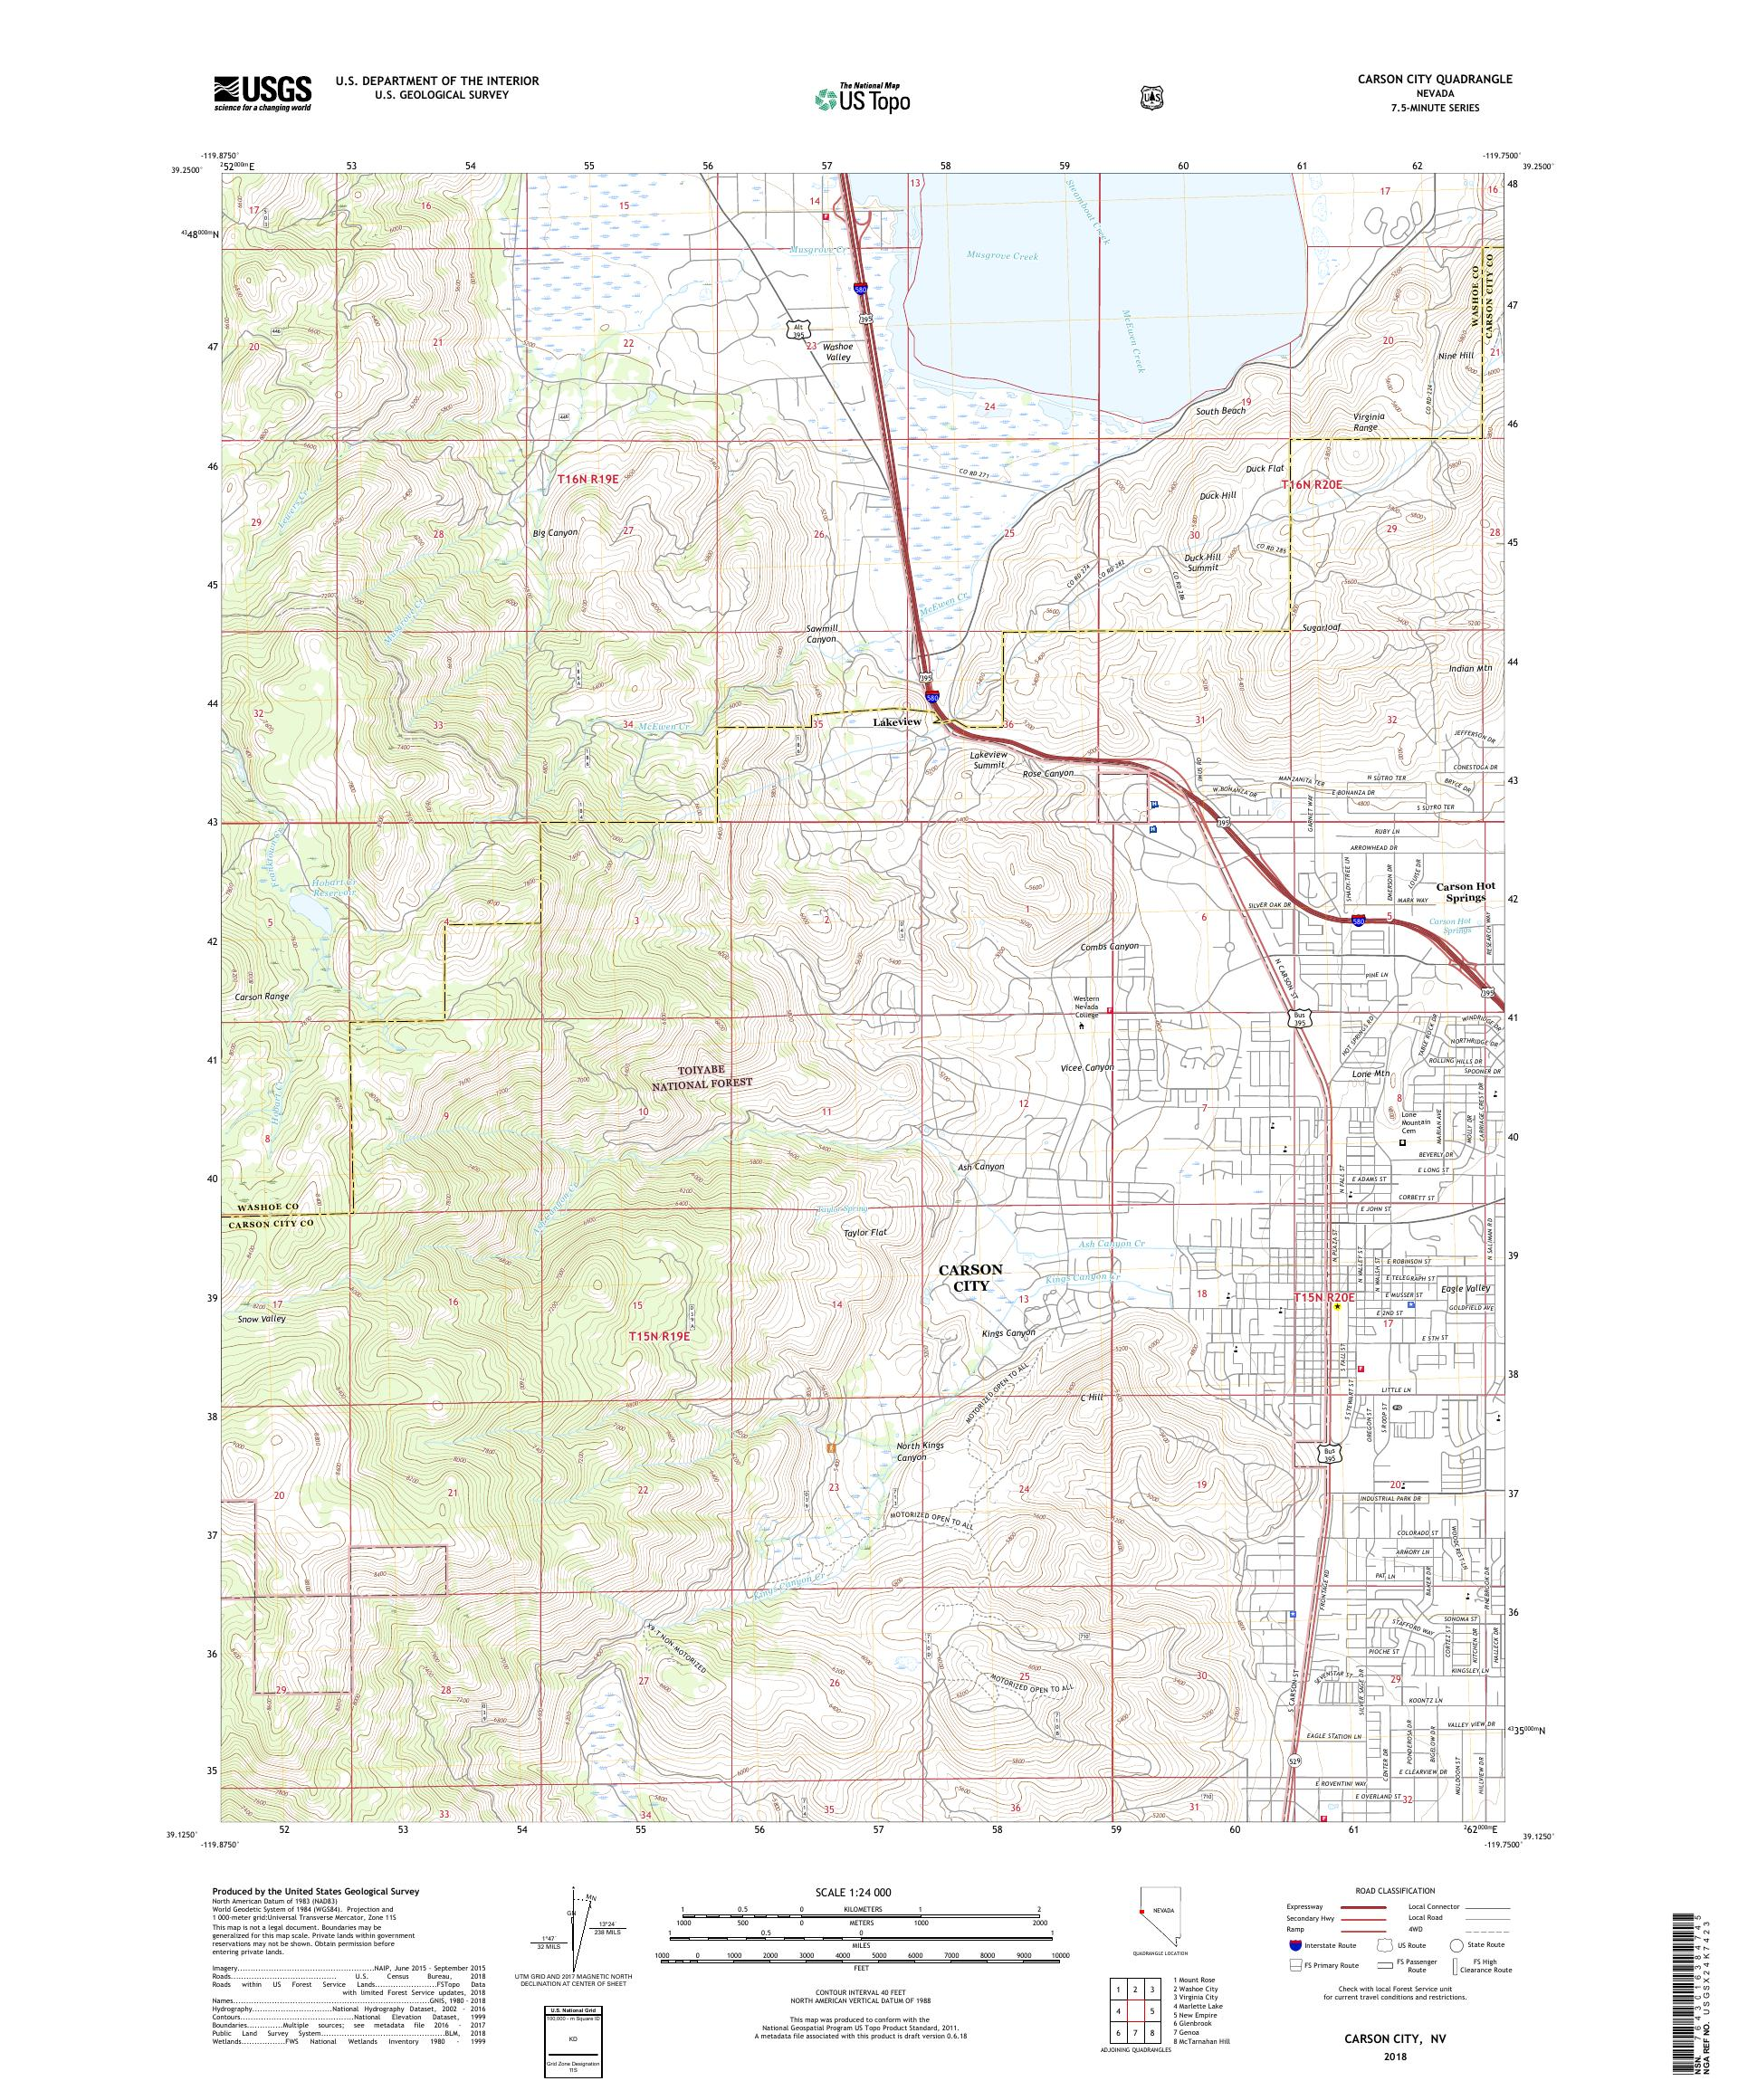 MyTopo Carson City, Nevada USGS Quad Topo Map